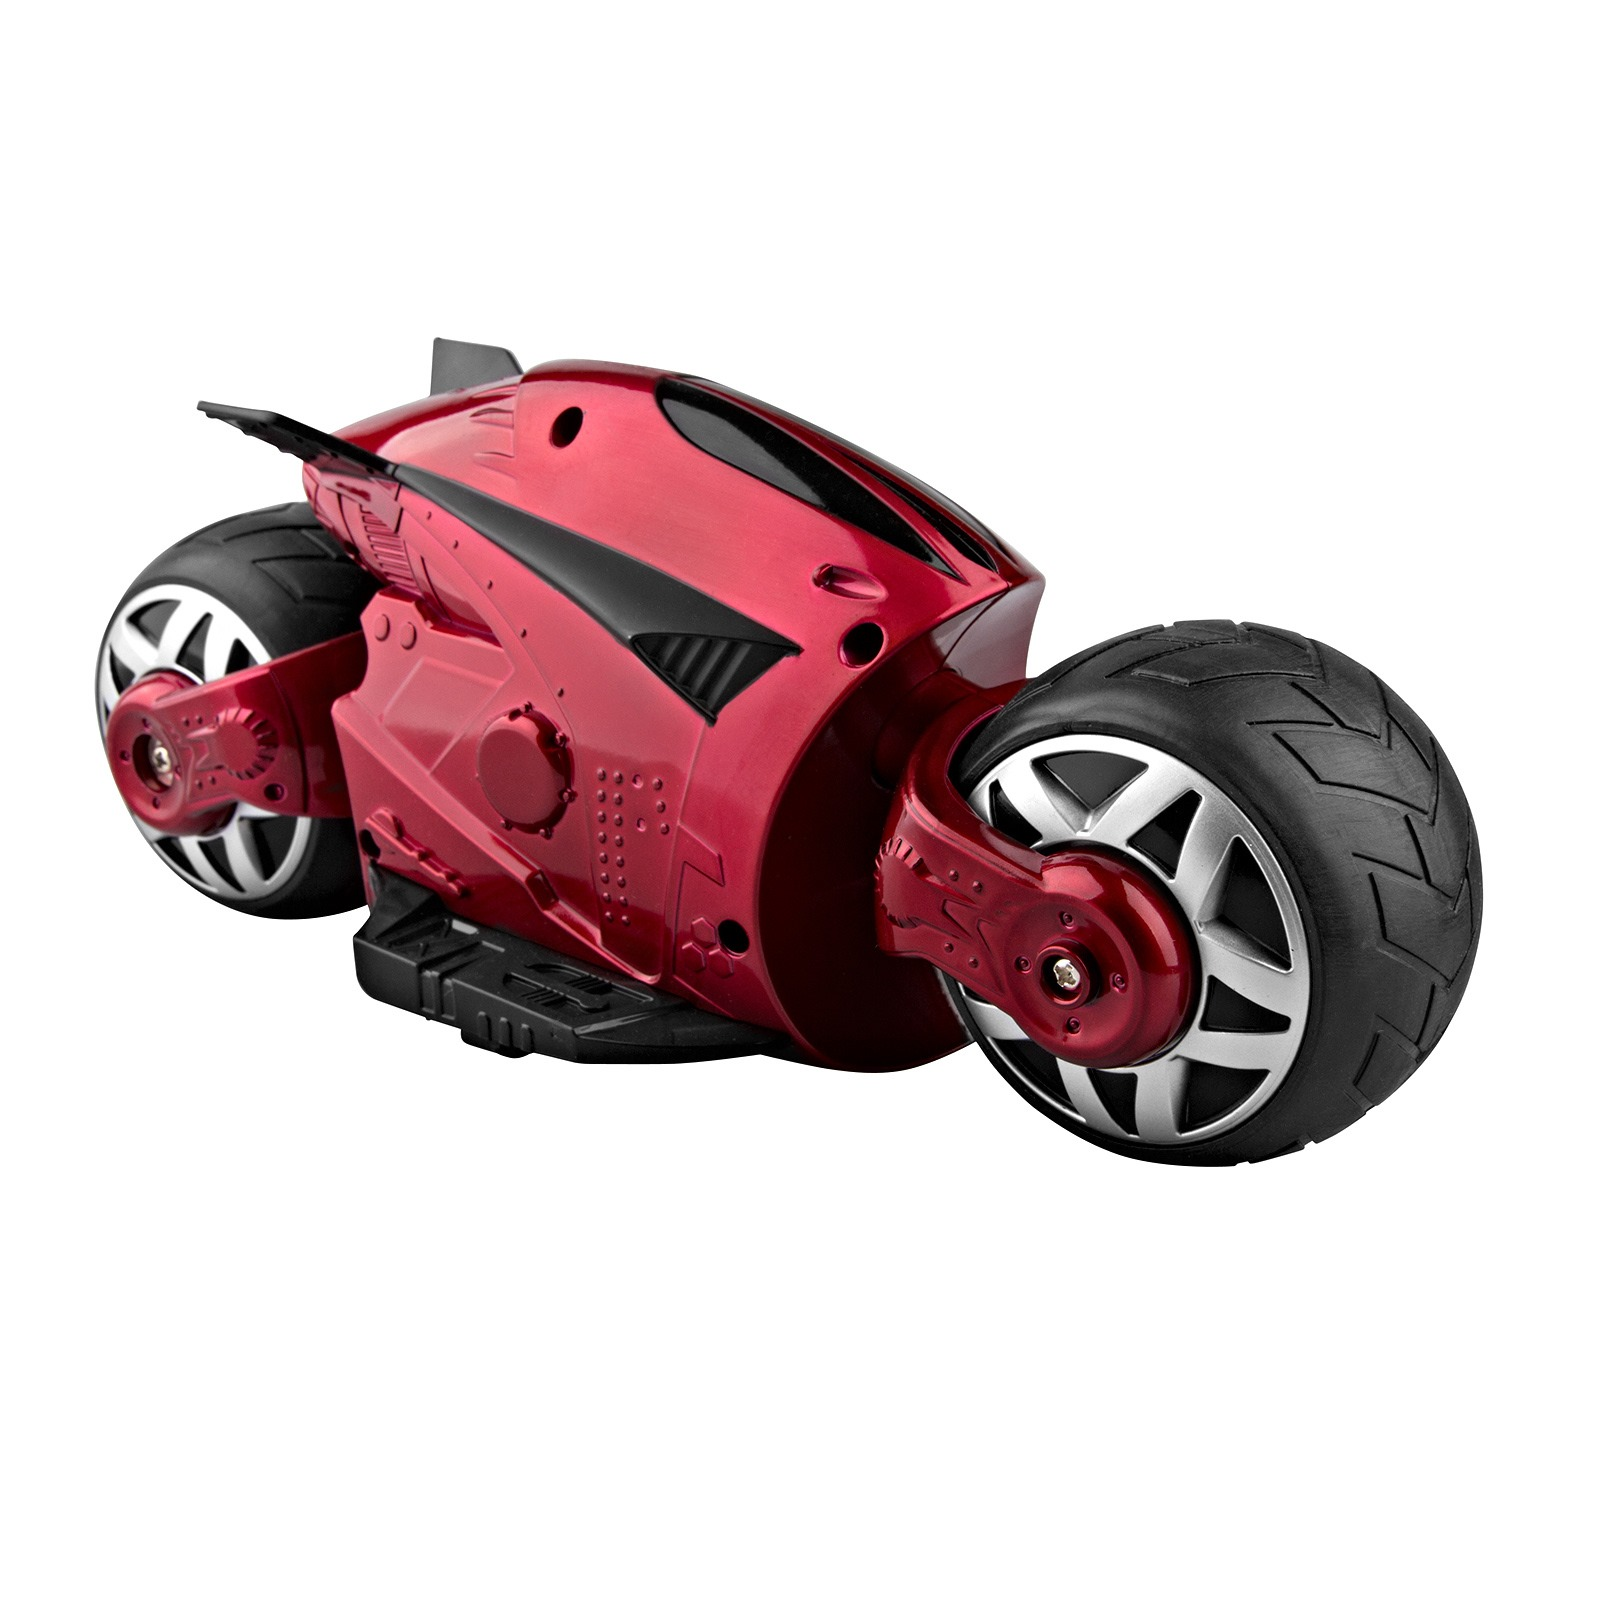 Kid Galaxy Cyber Cycle RC Motorcycle Red by Kid Galaxy